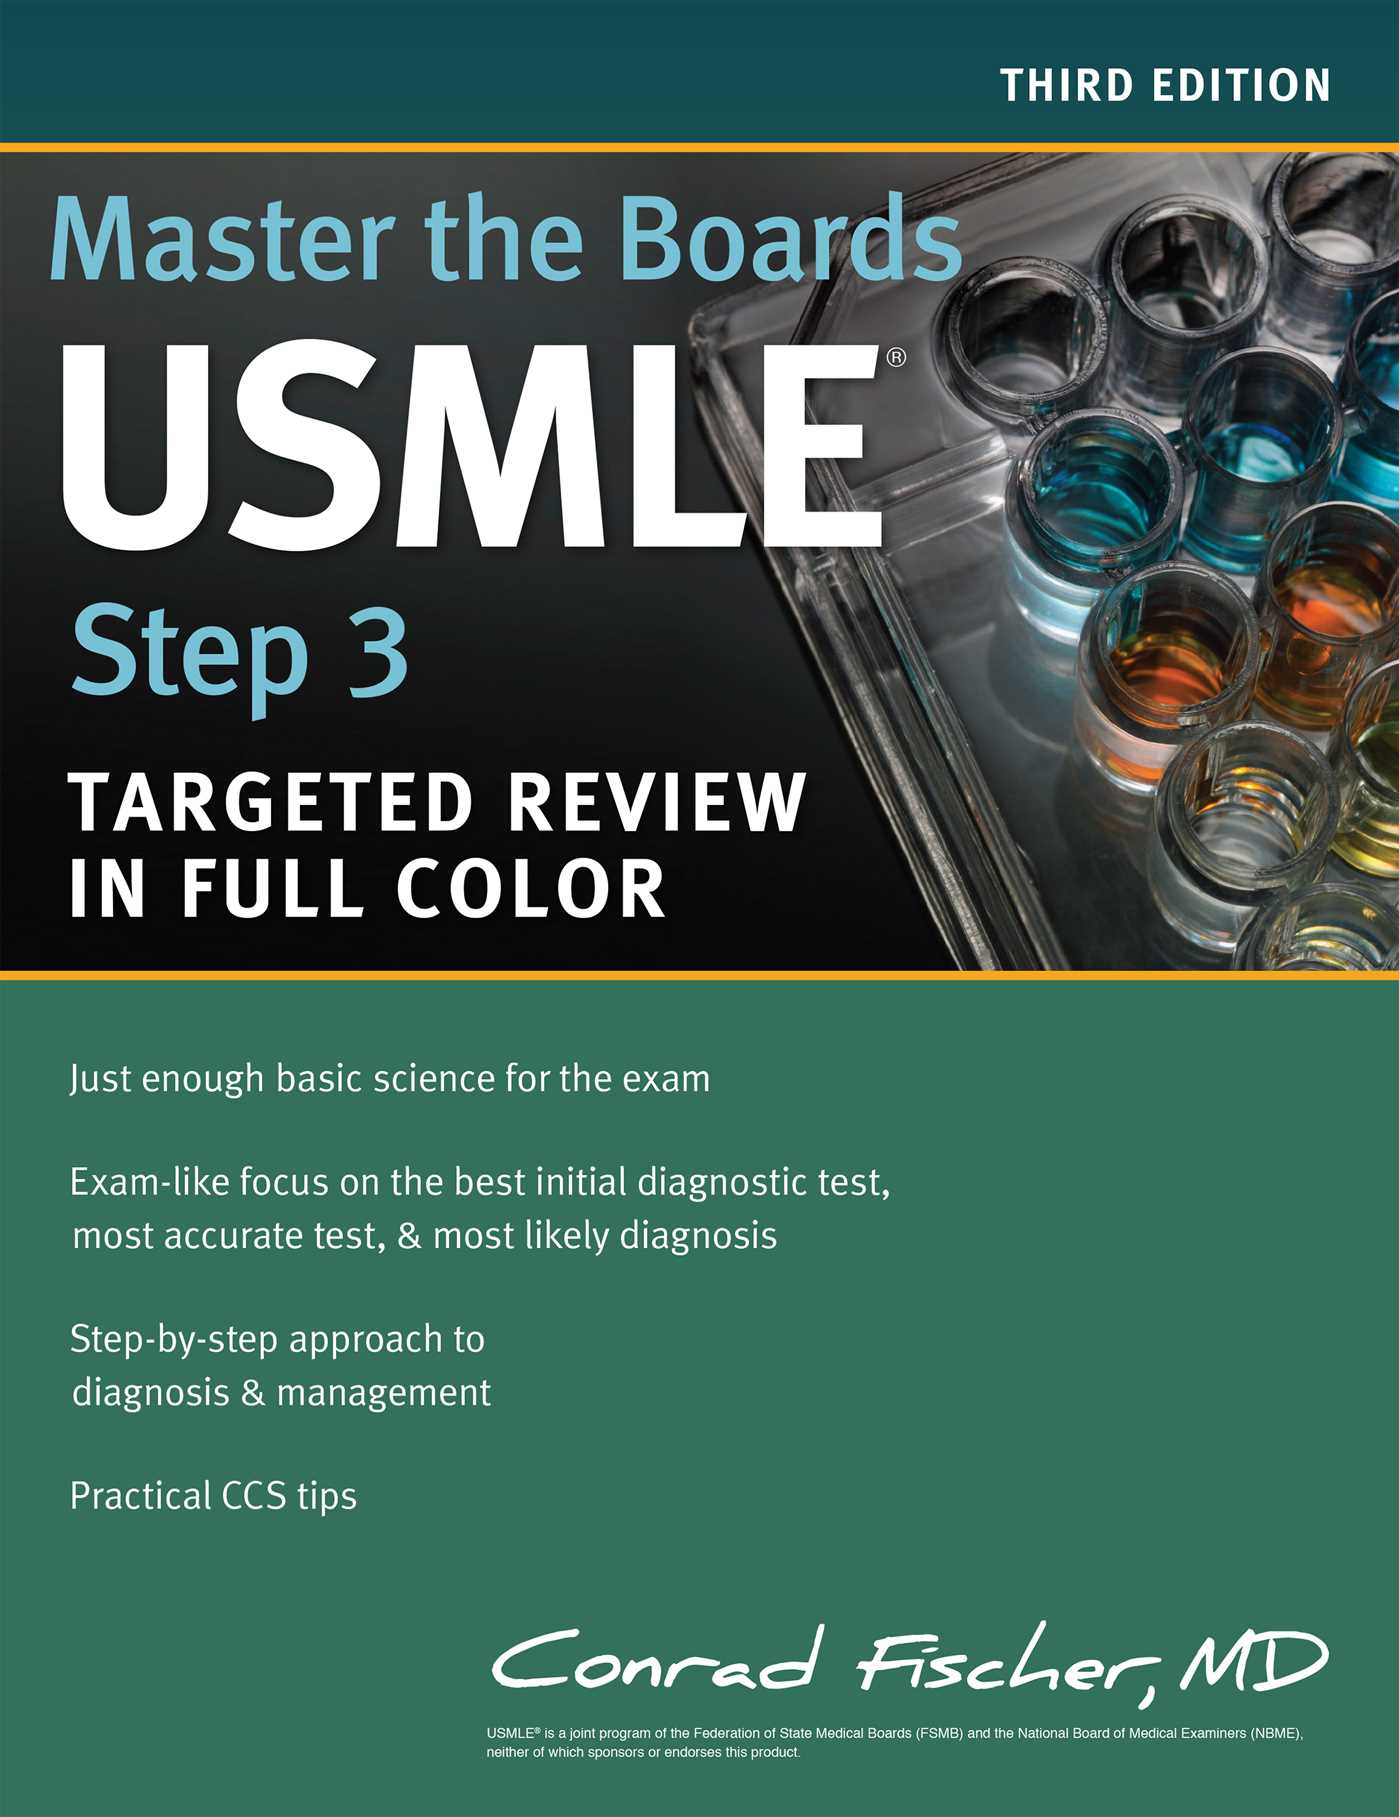 Master-the-boards-usmle-step-3-9781506207636_hr